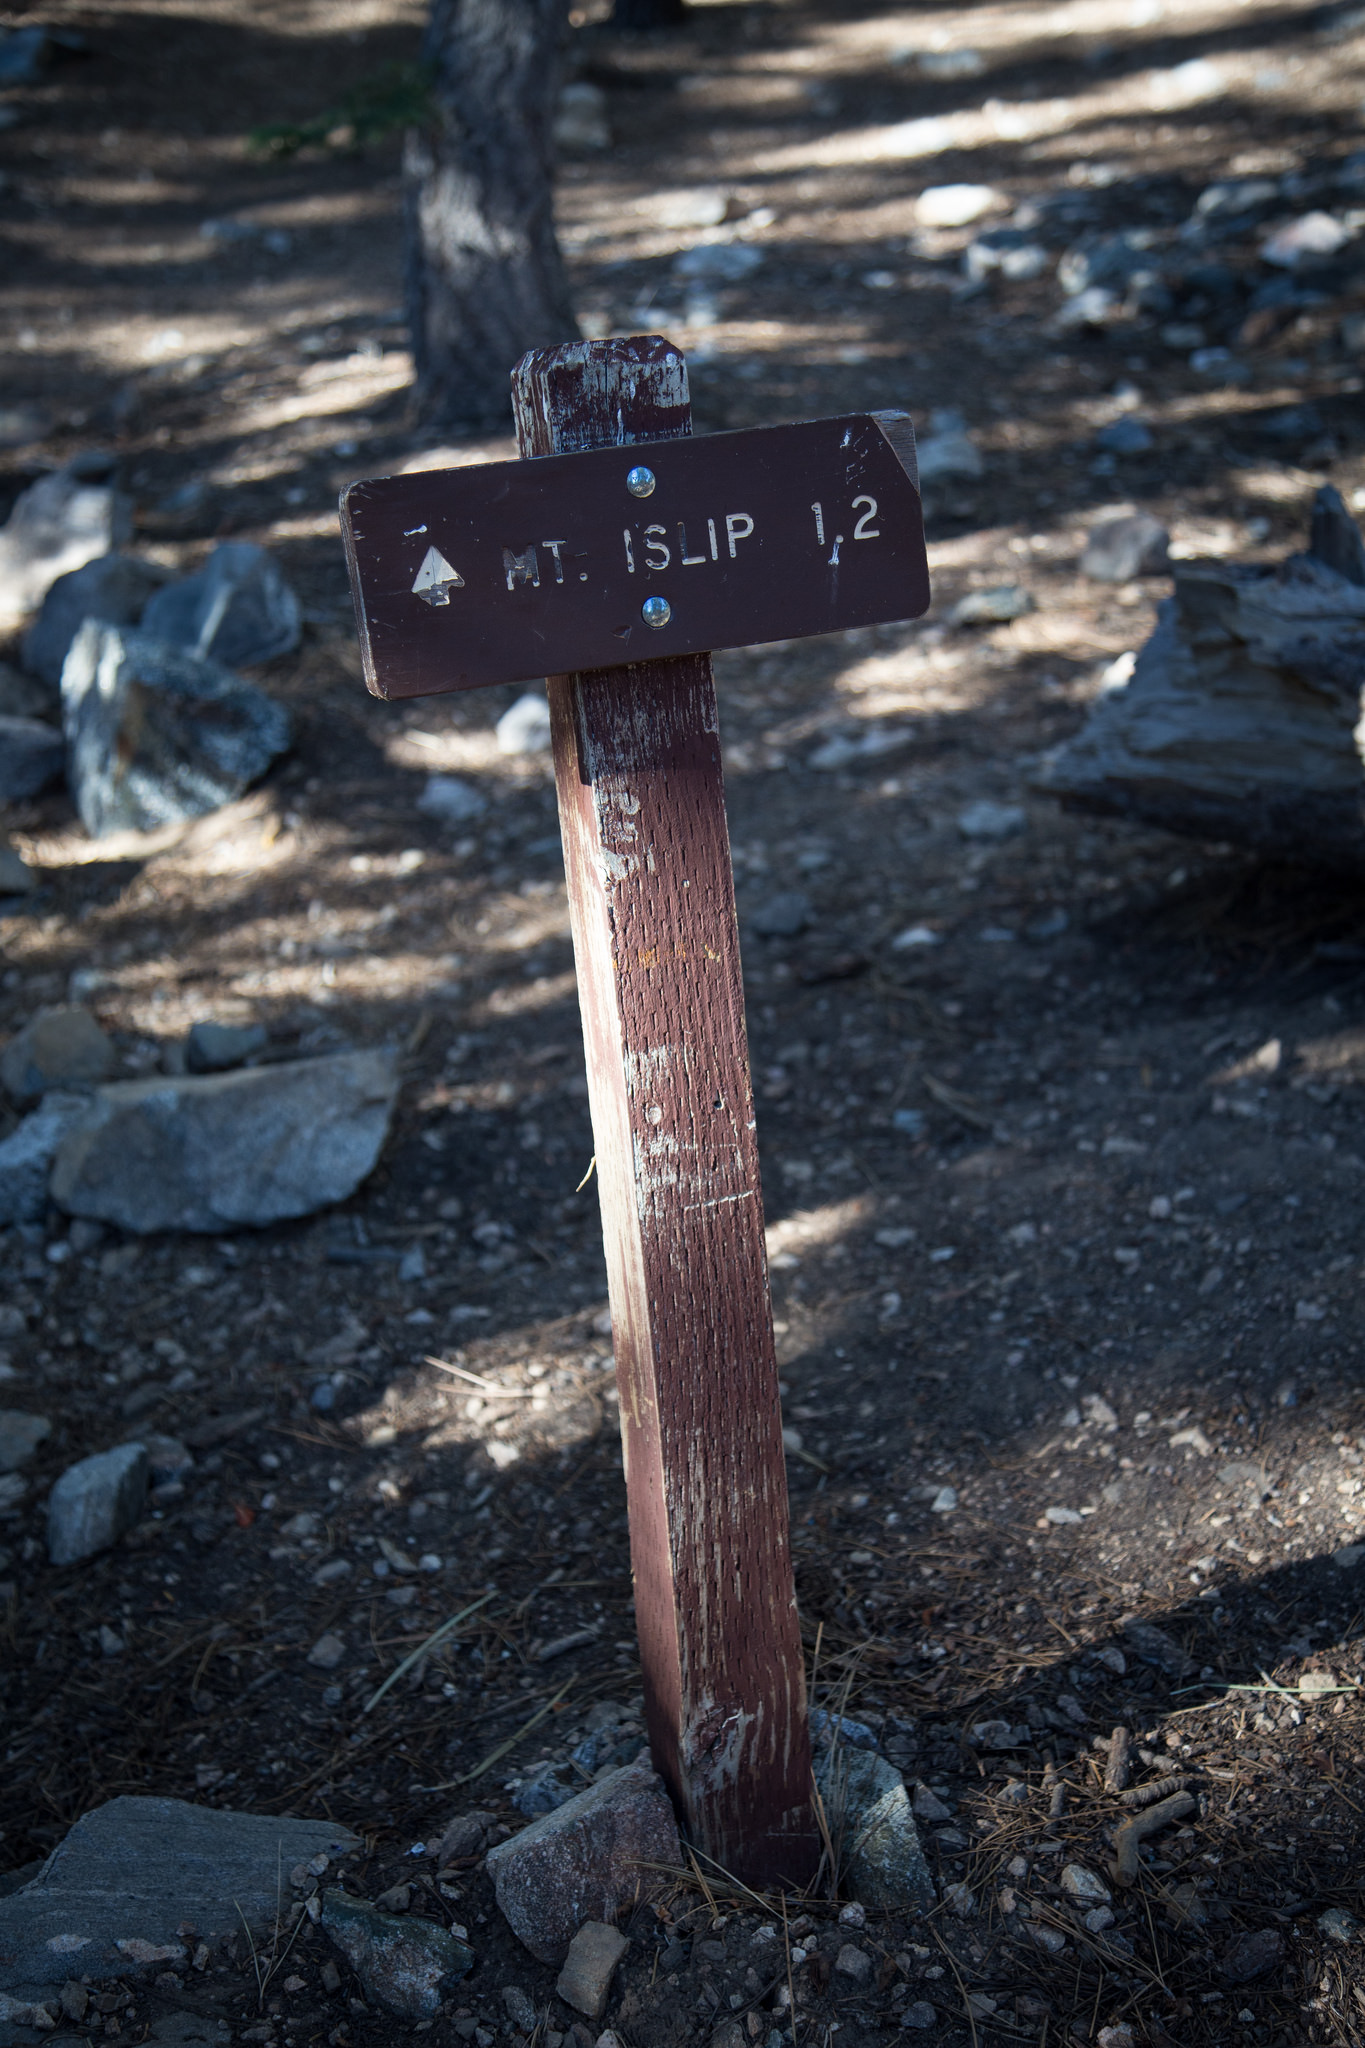 At this point, walk through the campground past the outhouses to find the Mt. Islip Trail to Islip Peak. The spur trail will take you to Little Jimmy Spring.